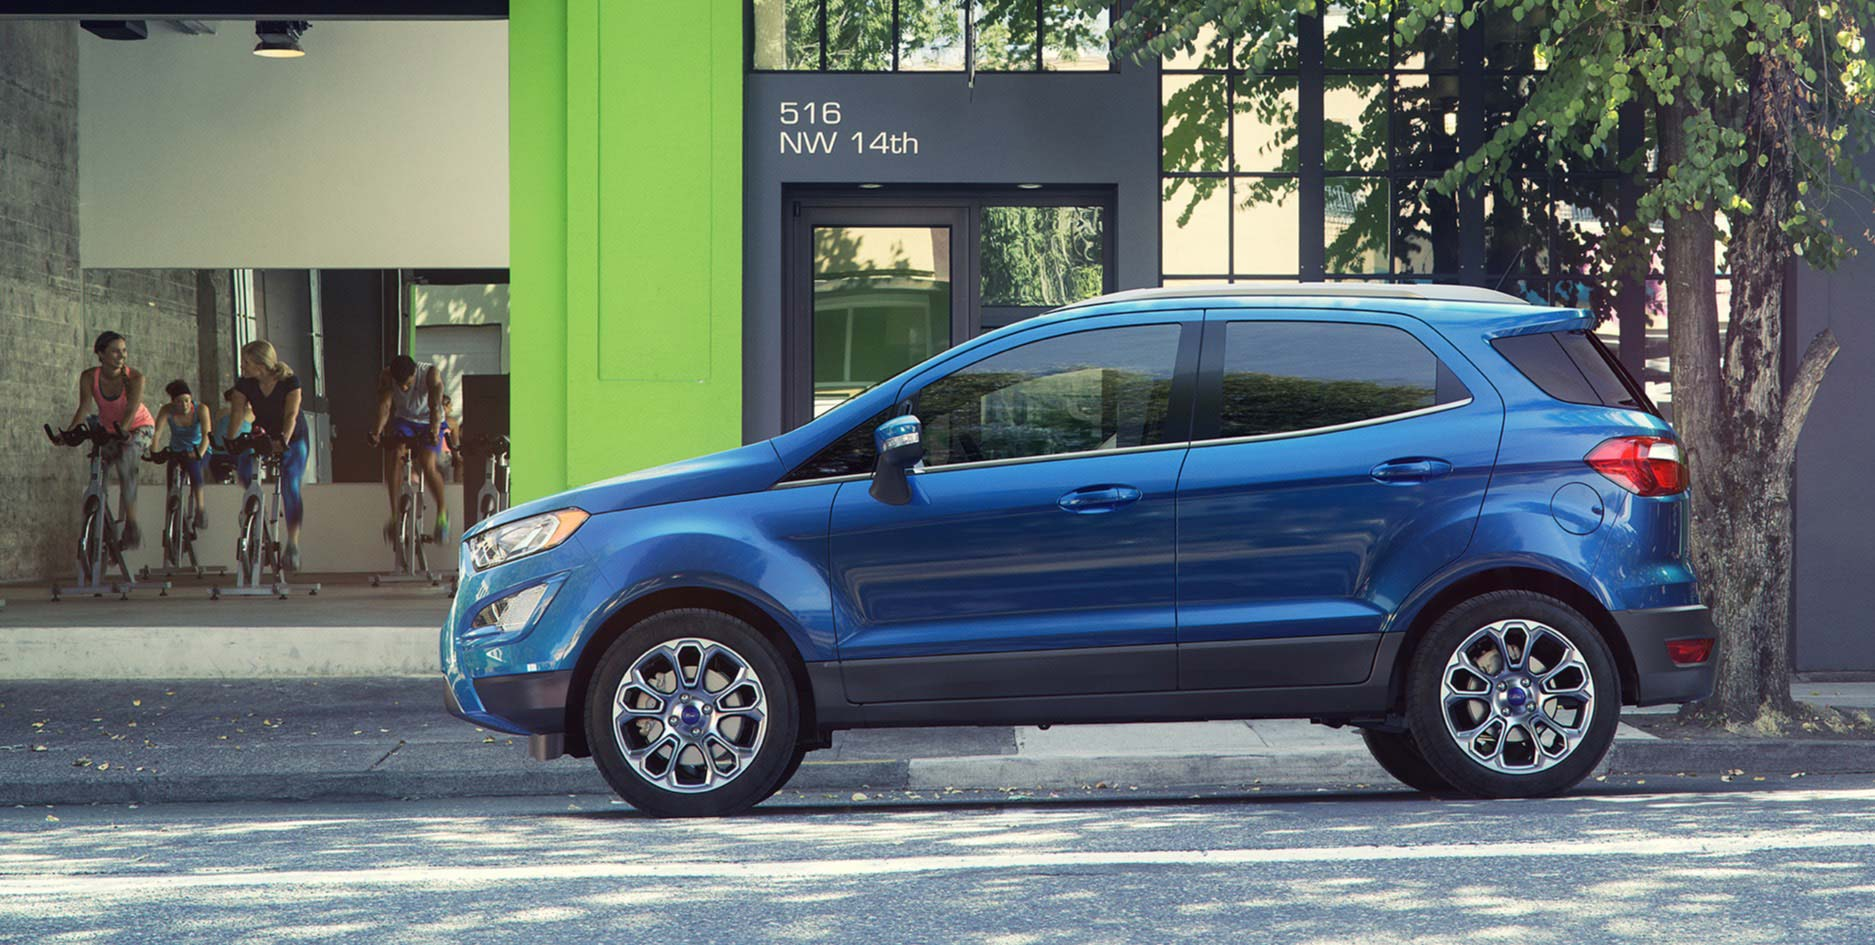 ford ecosport platinum edition price rs lakh features specs. Black Bedroom Furniture Sets. Home Design Ideas